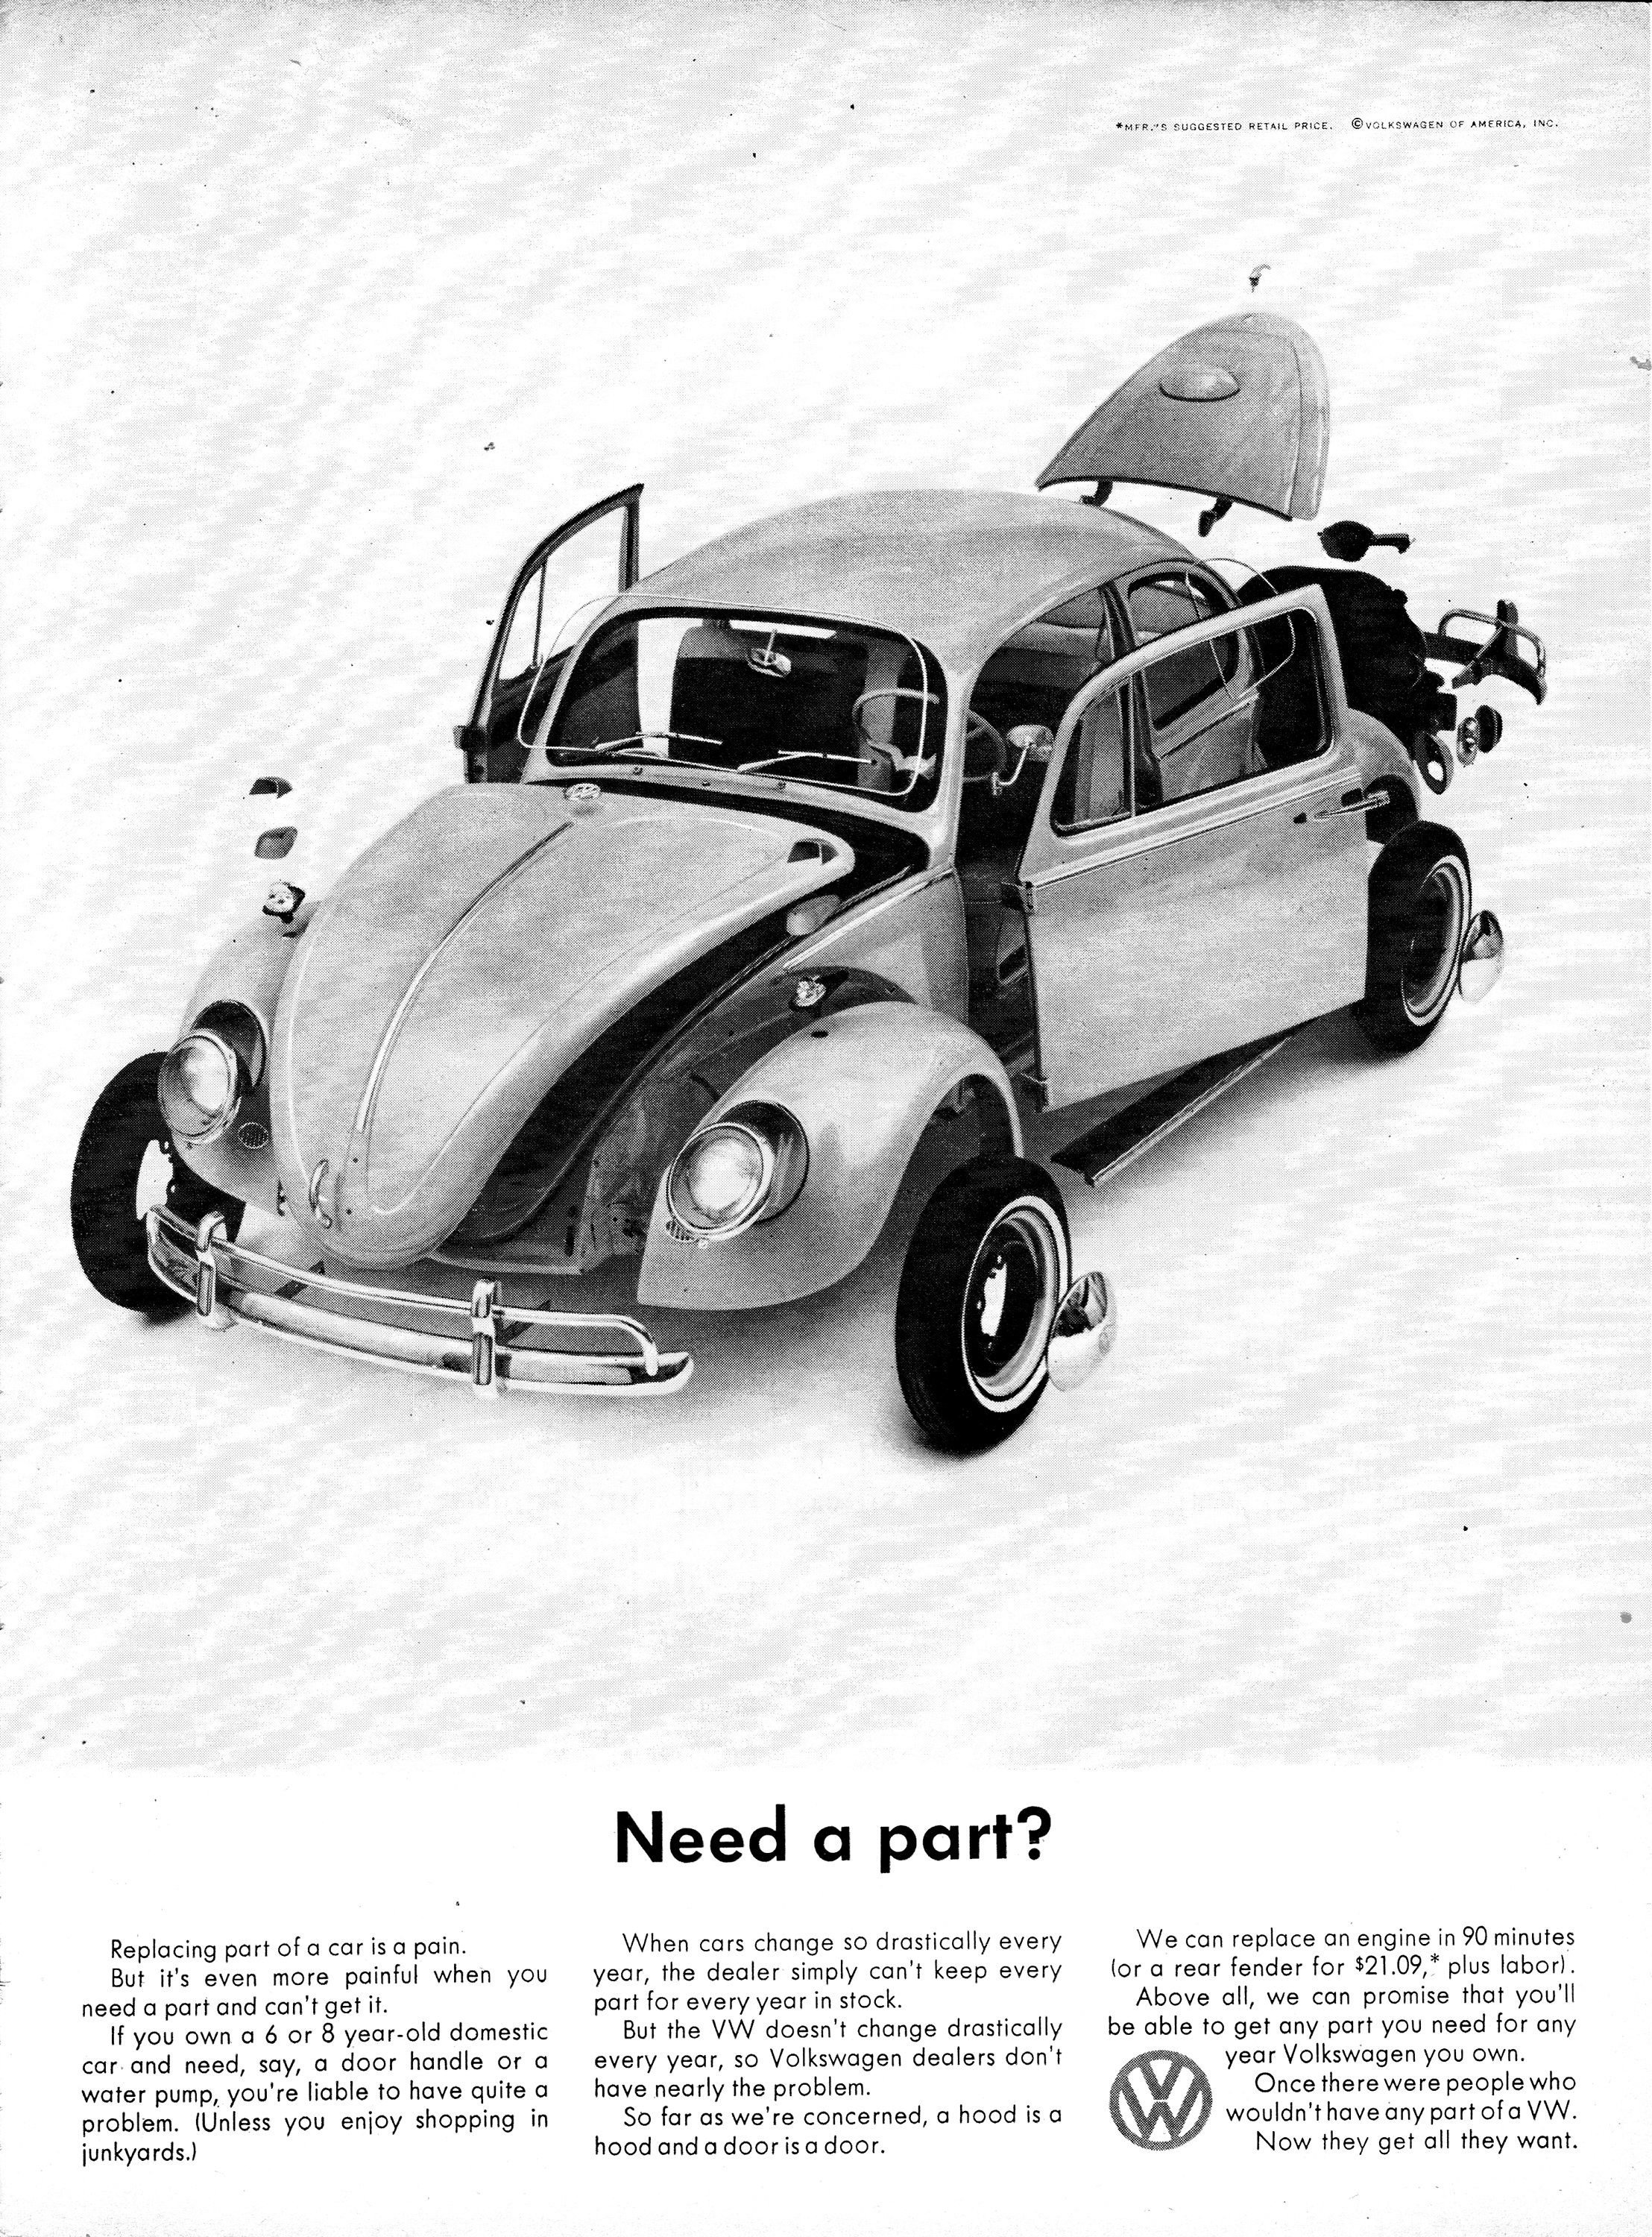 1964 VW Beetle-Need A Part-1 5 Hour Engine Replace-Bug